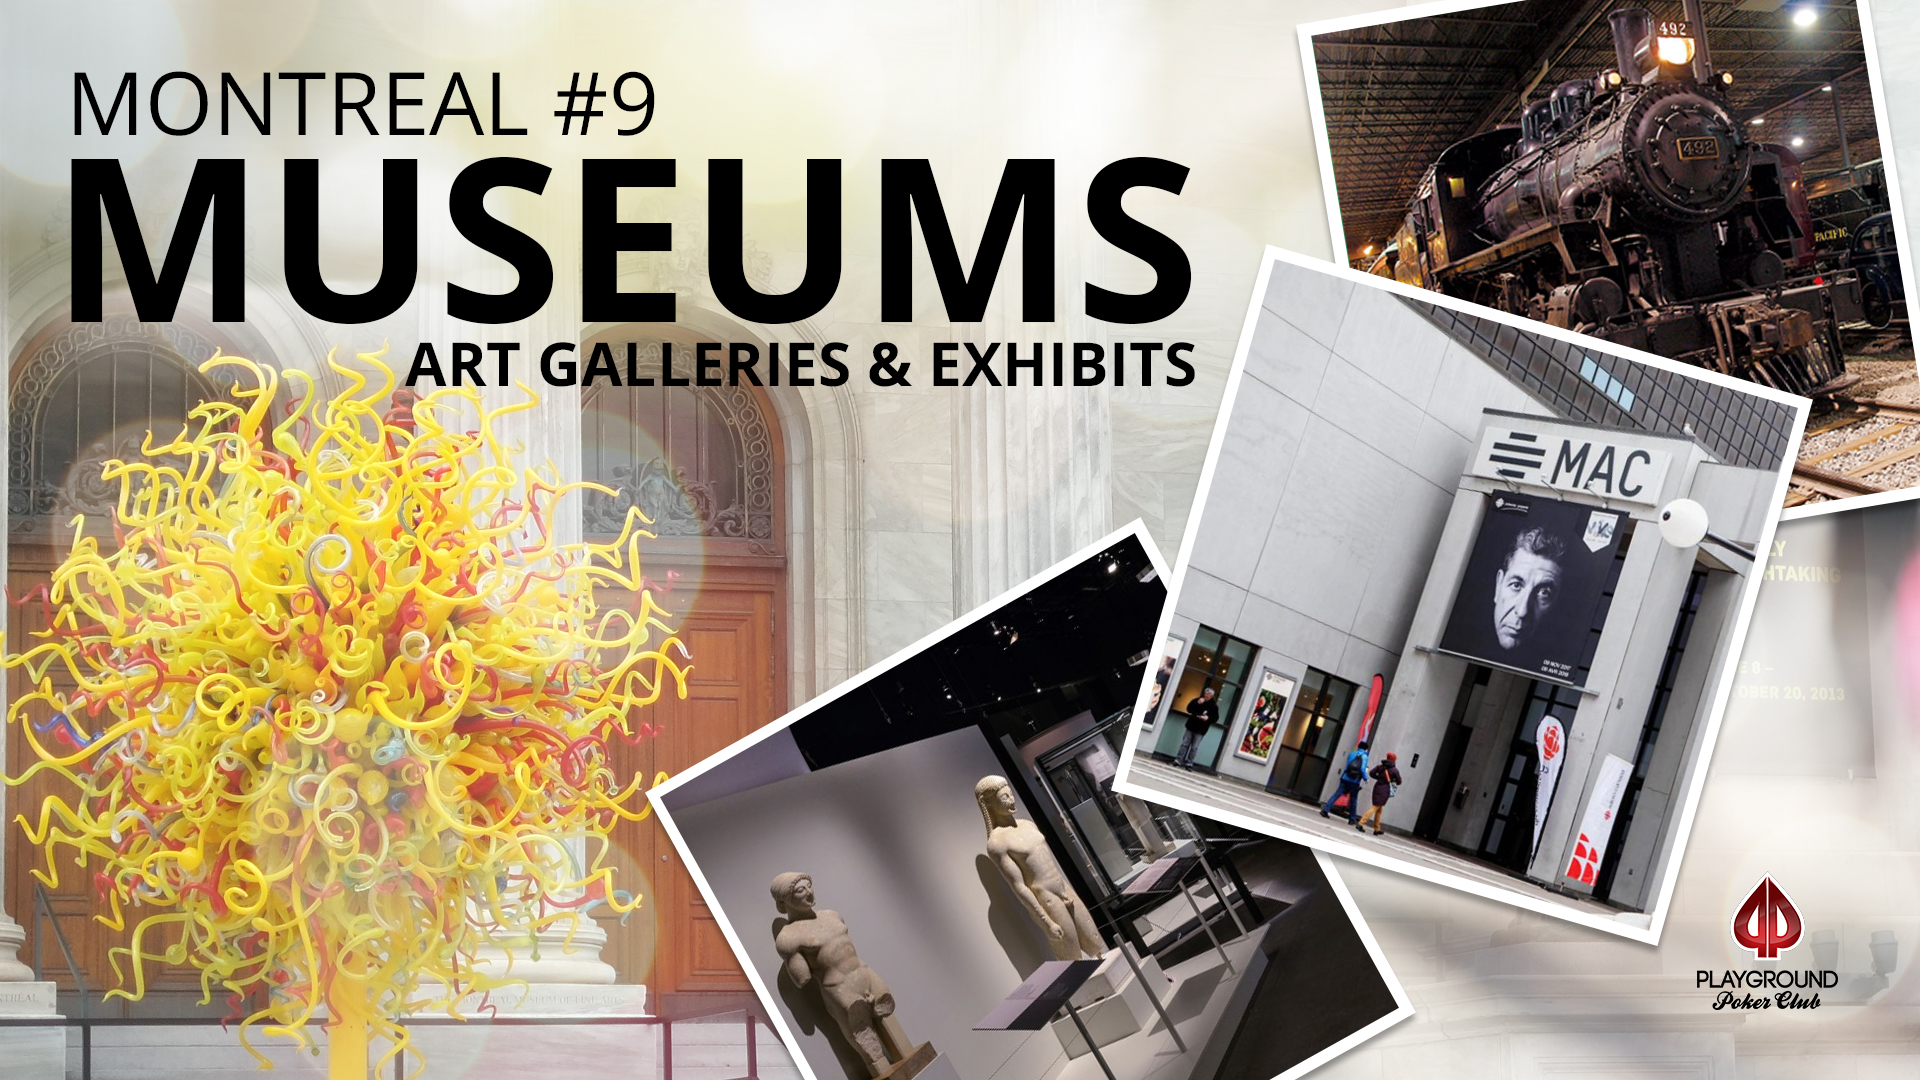 Number 9 on our Top 10: Museums, art galleries and exhibits